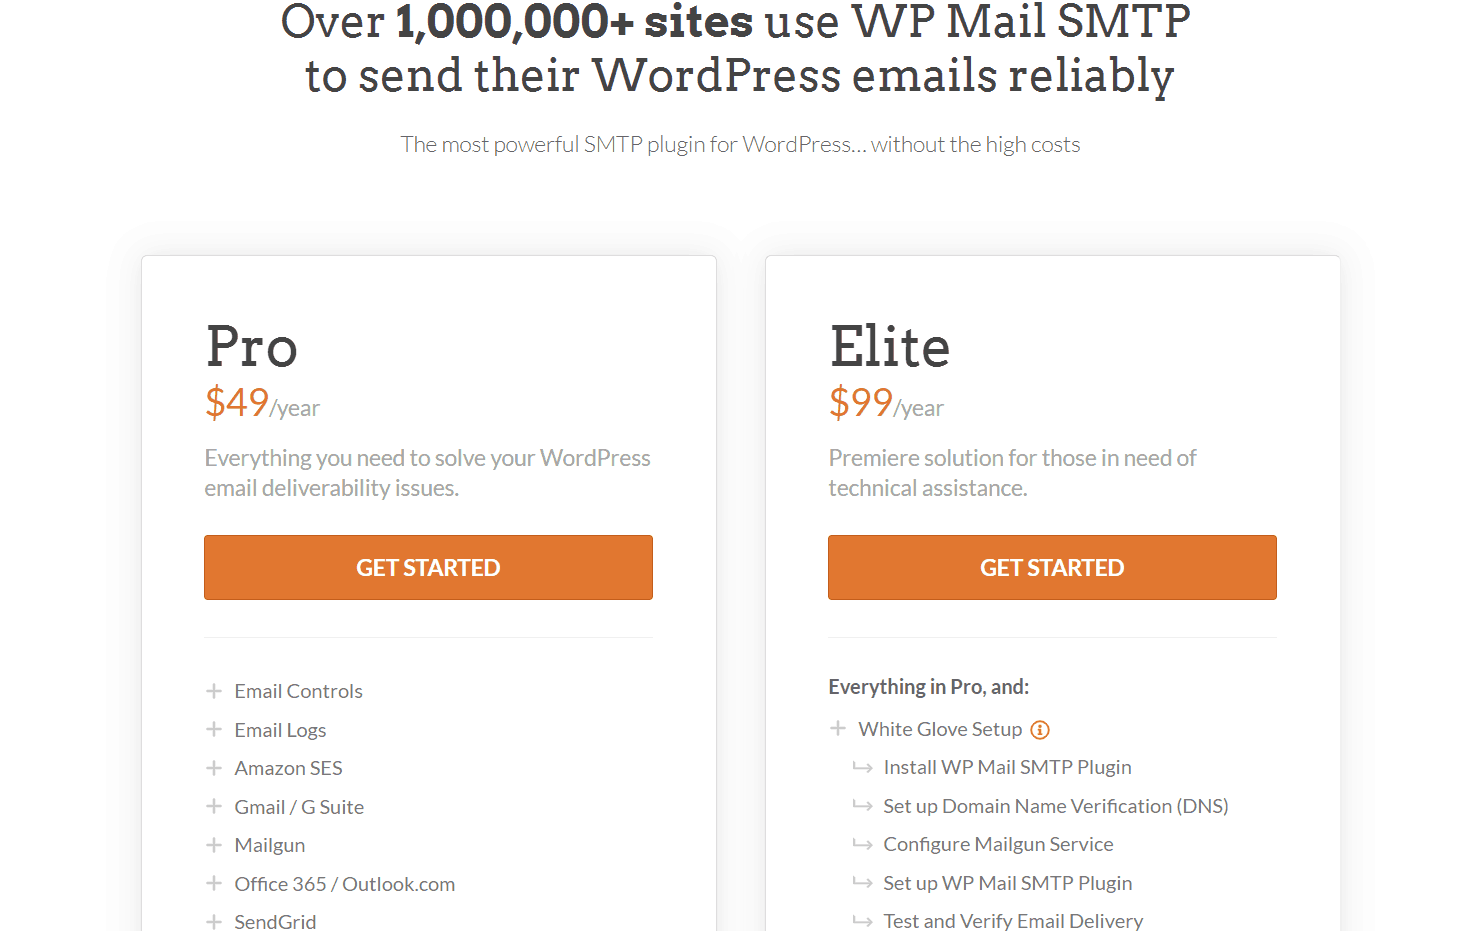 wp mail smtp plugin pricing